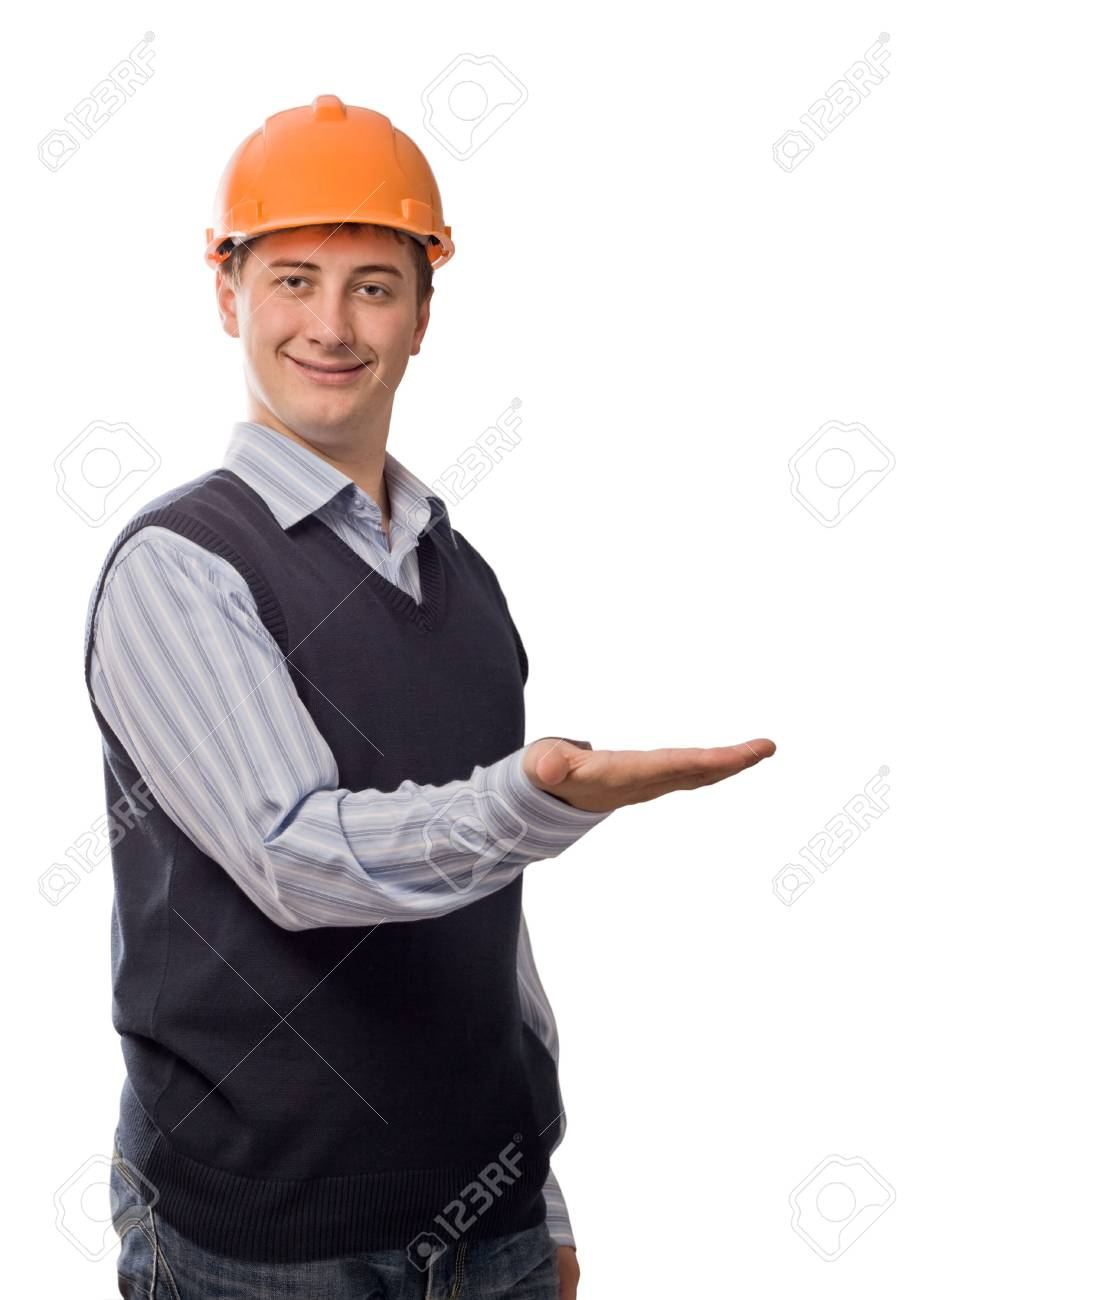 man in orange helmet showing empty palm, isolated on white background, copy space Stock Photo - 3444702